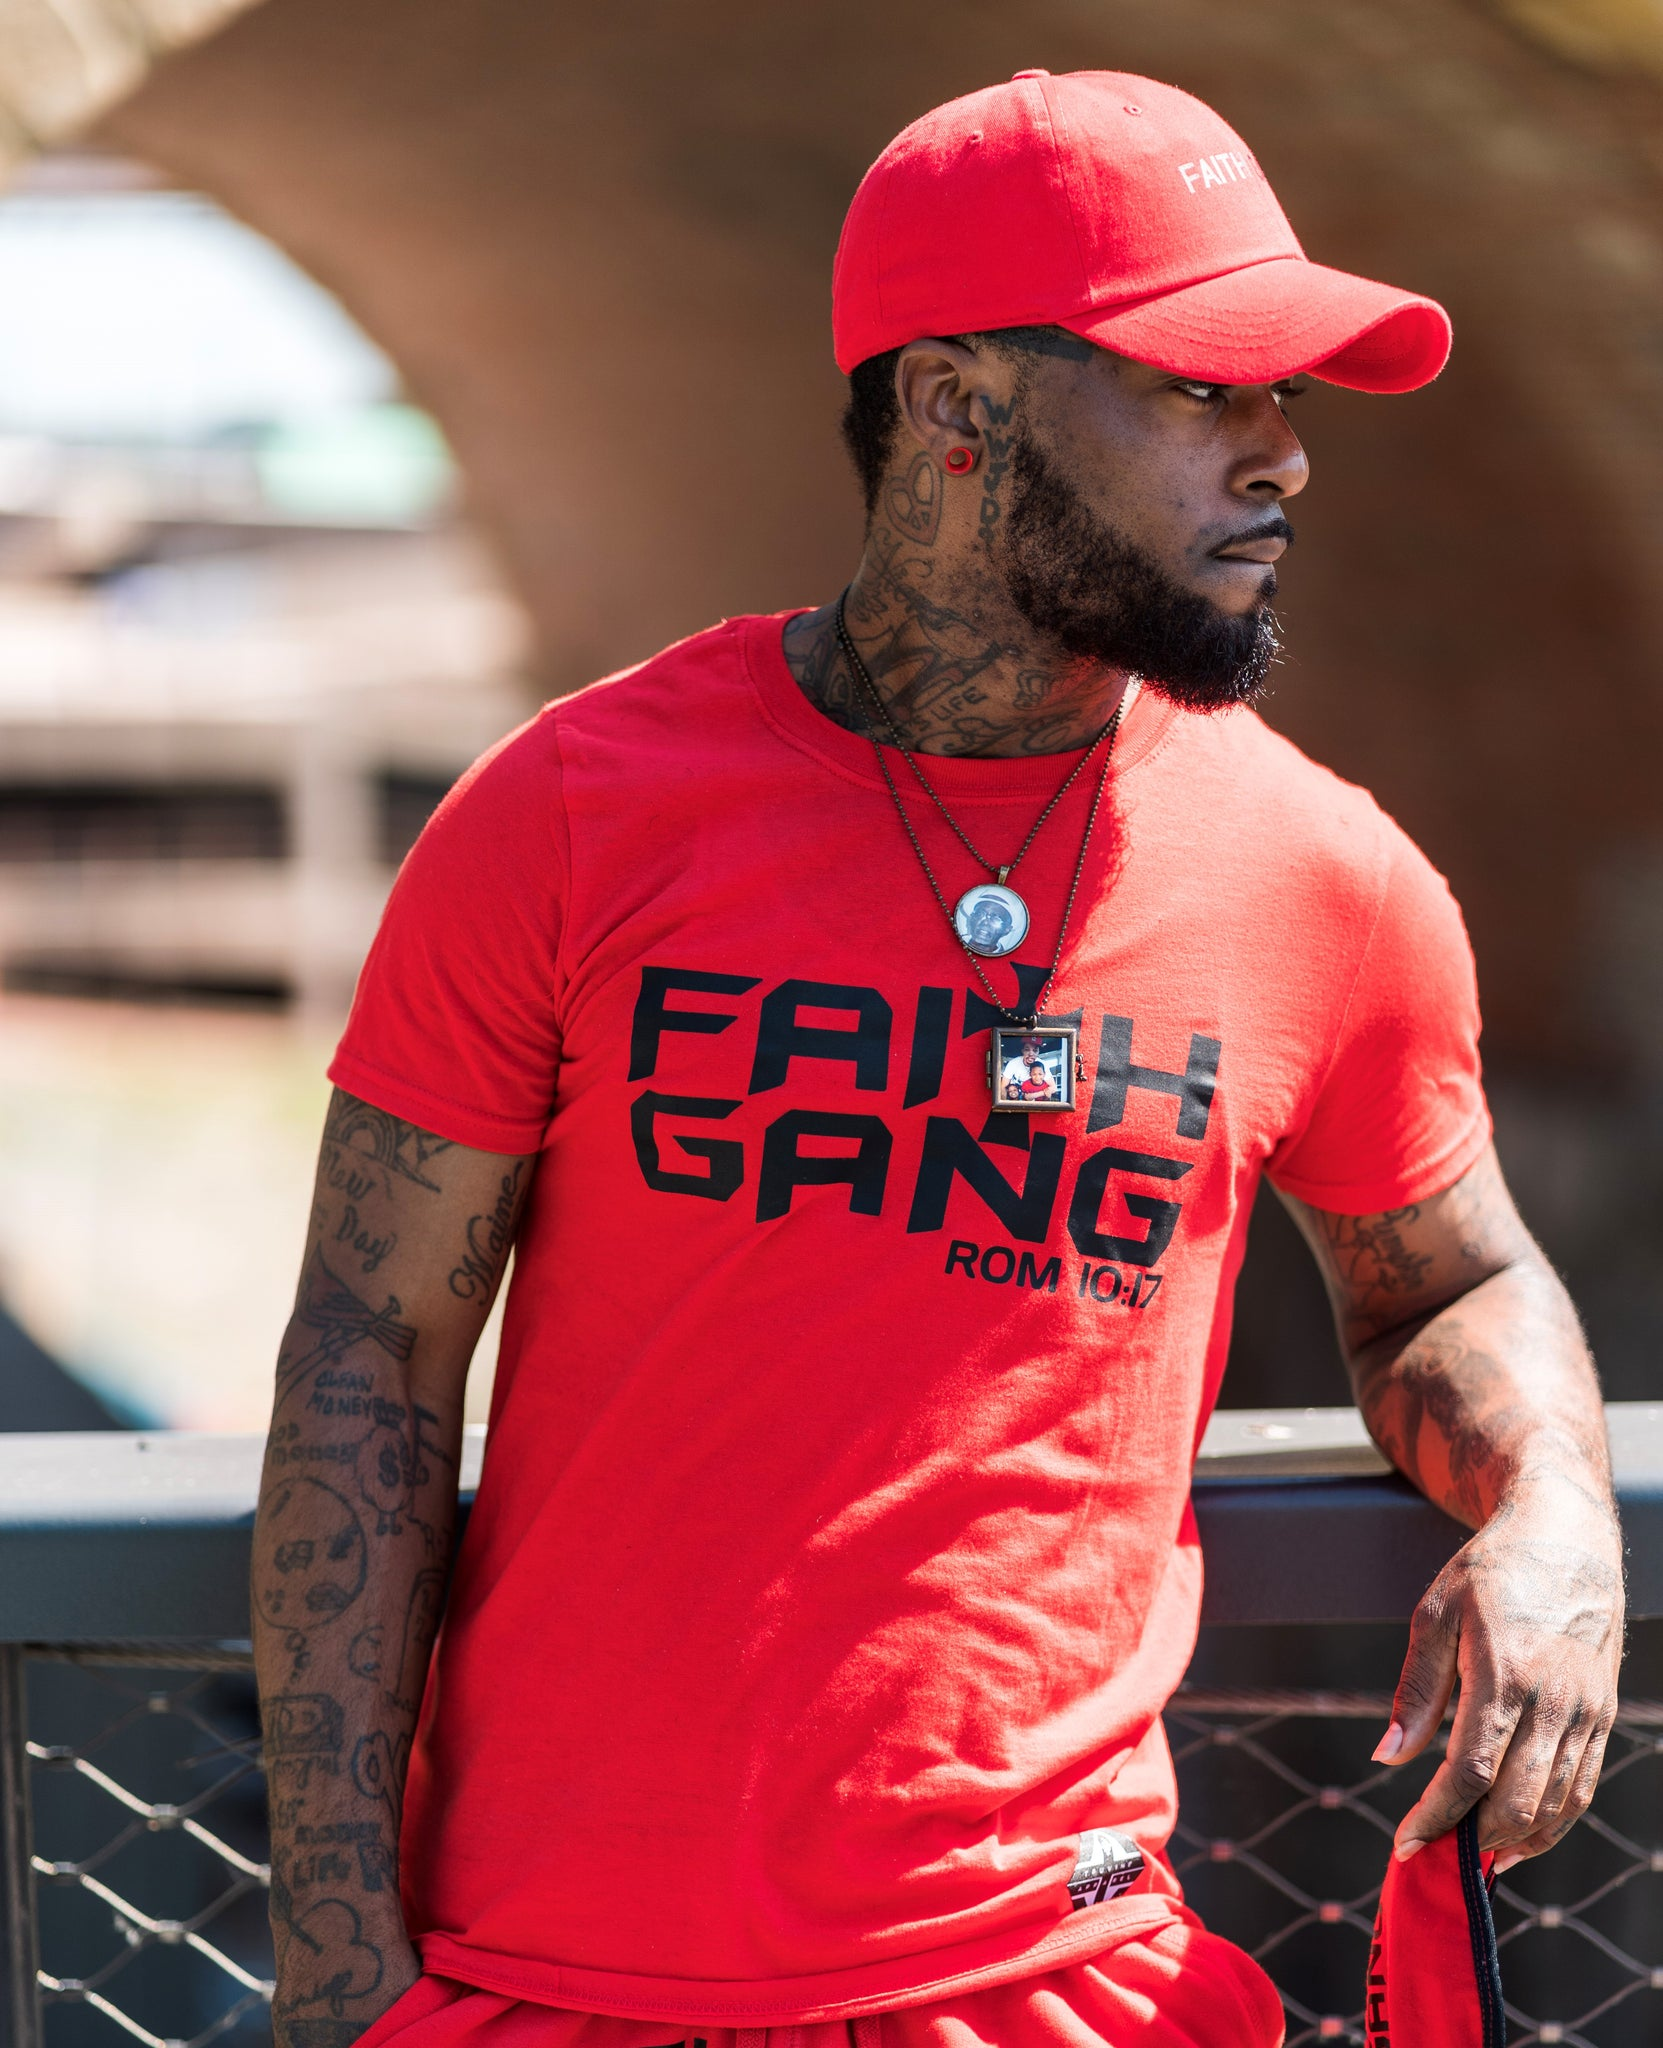 Faith Gang Red/Black Unisex Tee (Multiple color options)